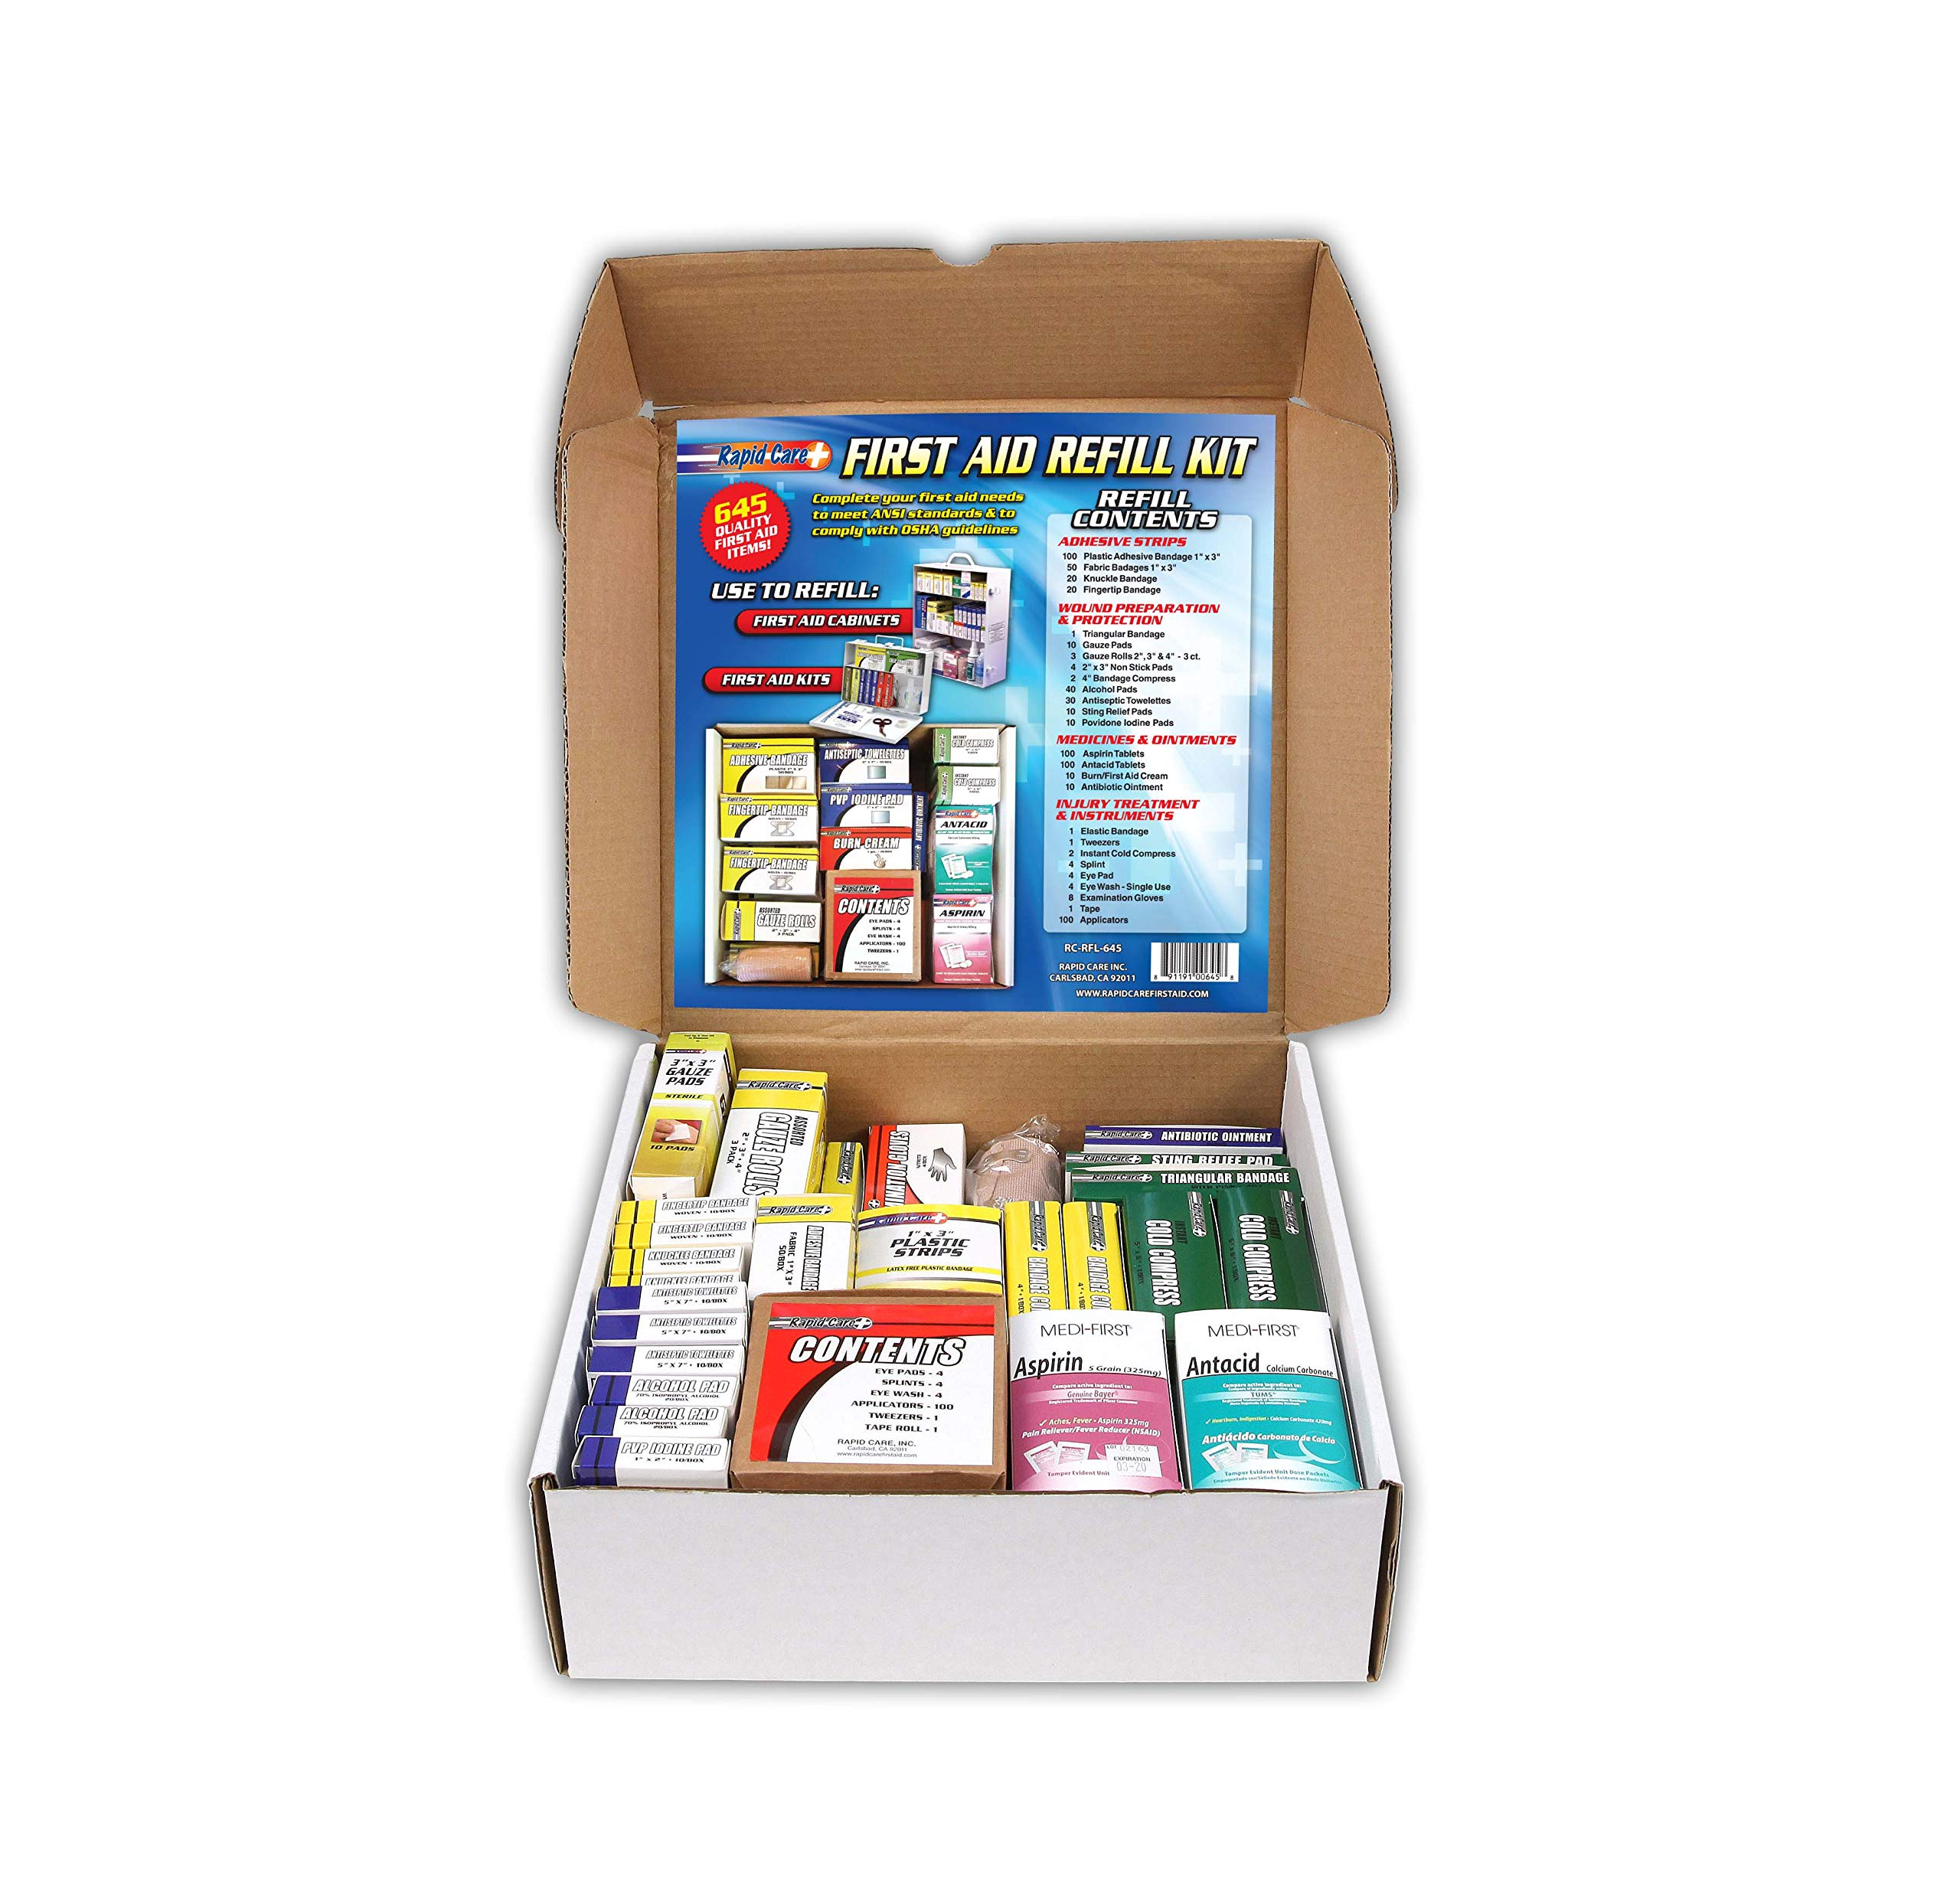 Rapid Care First Aid 93645 Refill Kit for 3 Shelf First Aid Cabinet, 643 Pieces, For Over 75 People by Rapid Care First Aid